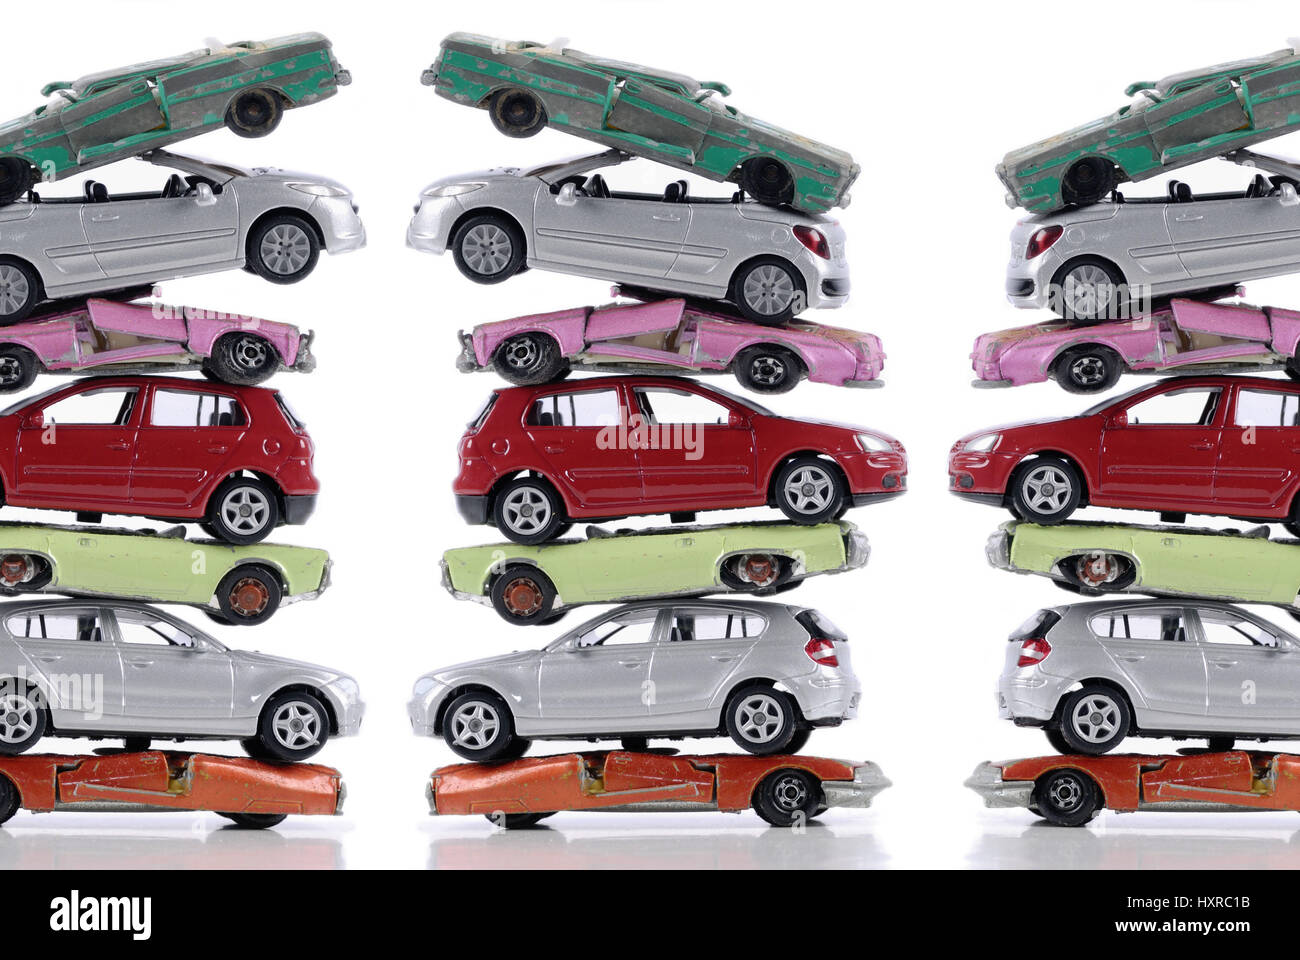 Broken and new stacked miniature cars, stagnant new carriage sales at the end of the cash for clunkers, Kaputte und neue gestapelte Miniaturautos, sto Stock Photo